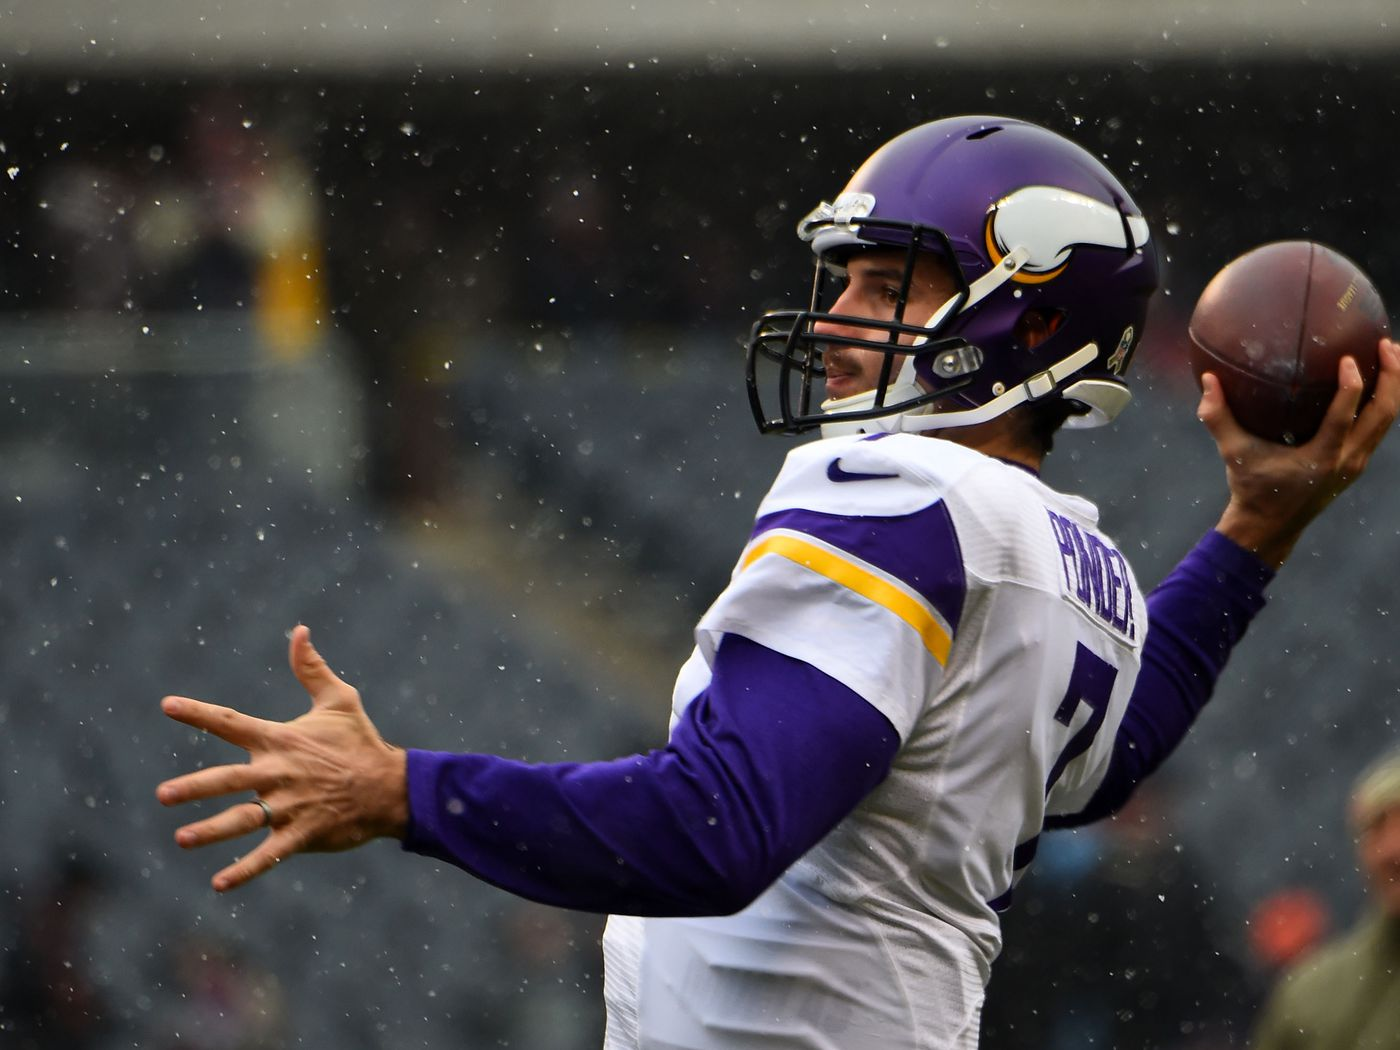 Christian Ponder Signs One-Year Deal with Raiders - Daily Norseman